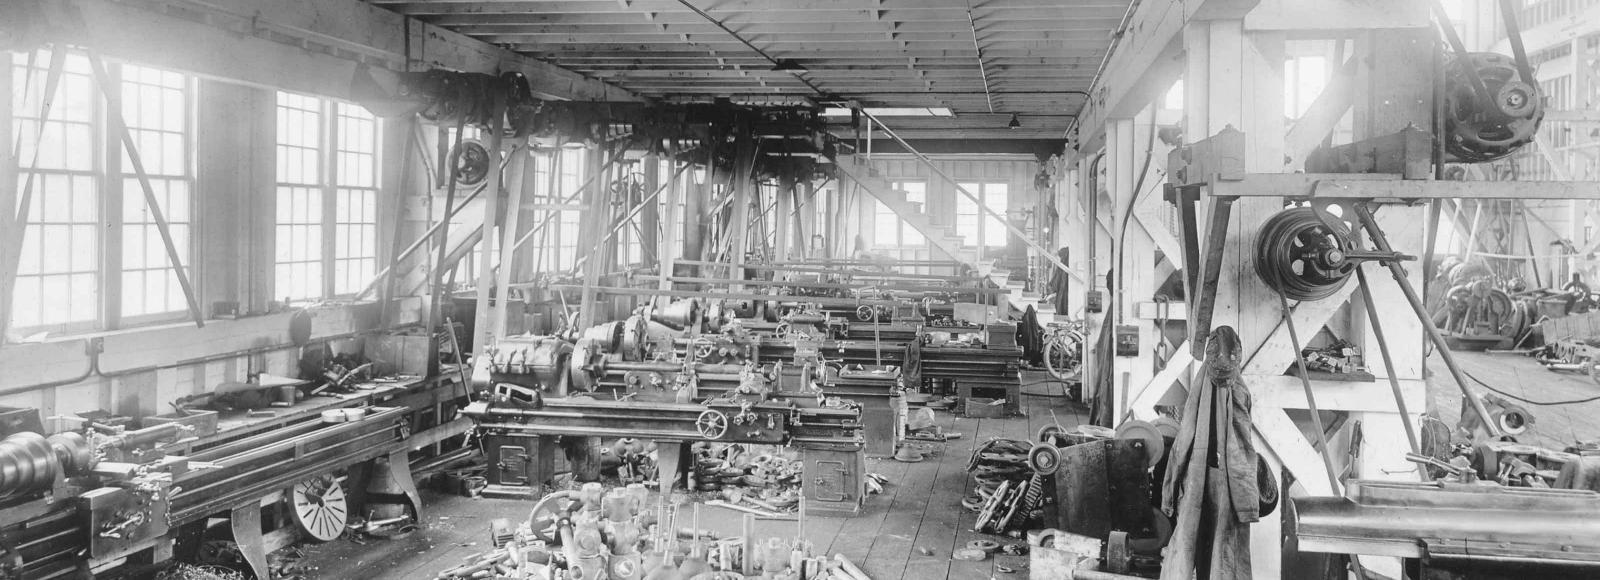 Hesse-Ersted-Iron-Works_machine_shop